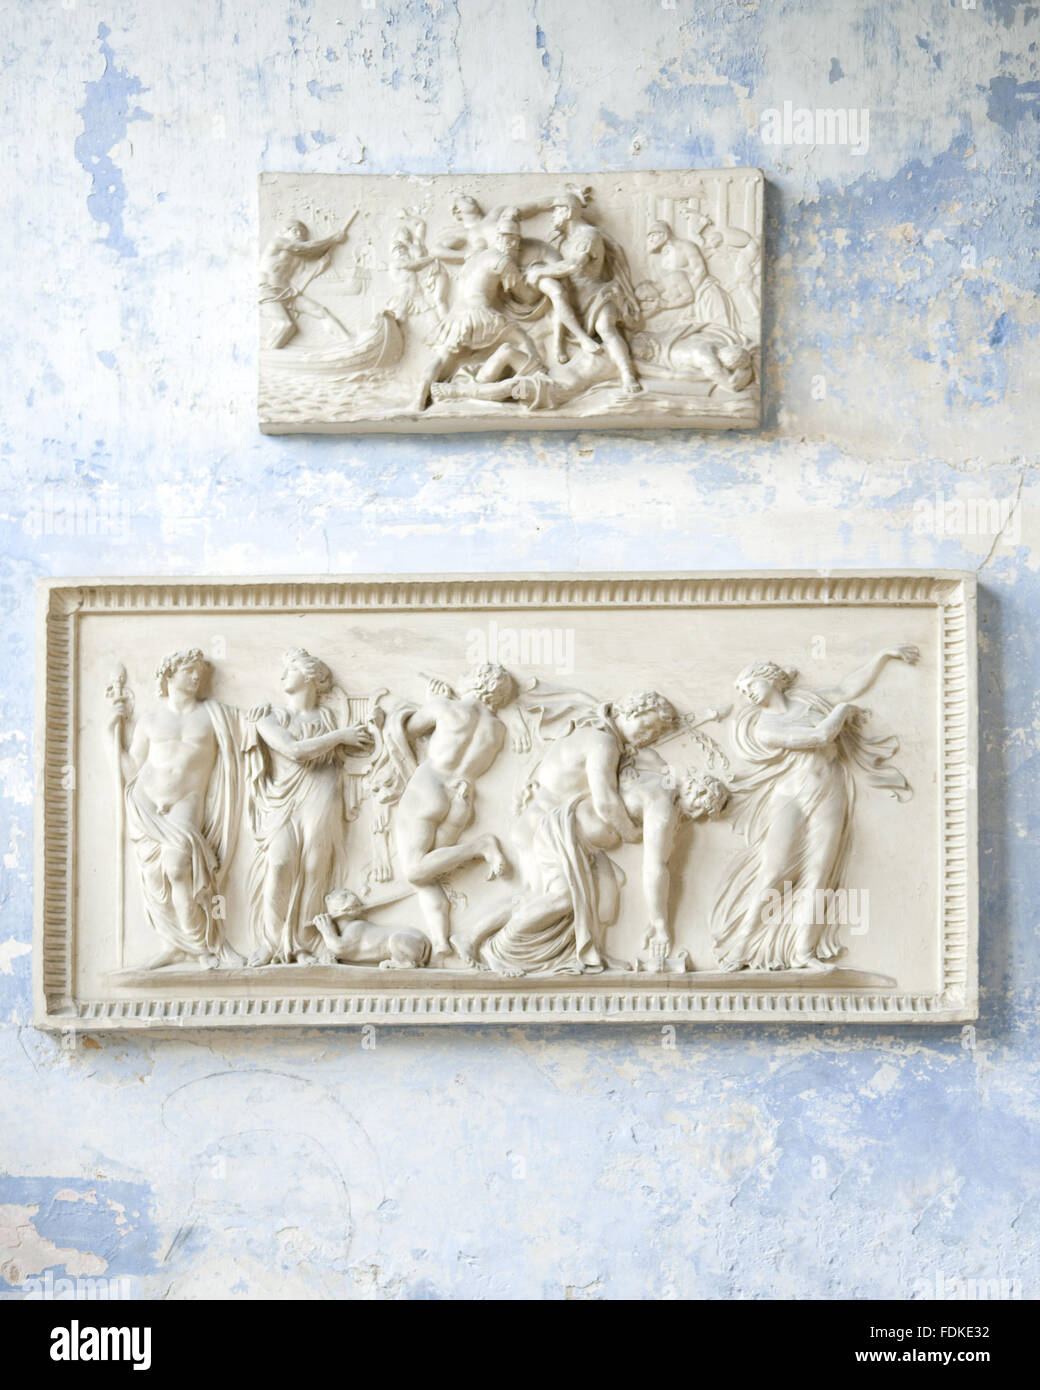 Detail of plaster reliefs in the Orangery at Knole, Kent. - Stock Image